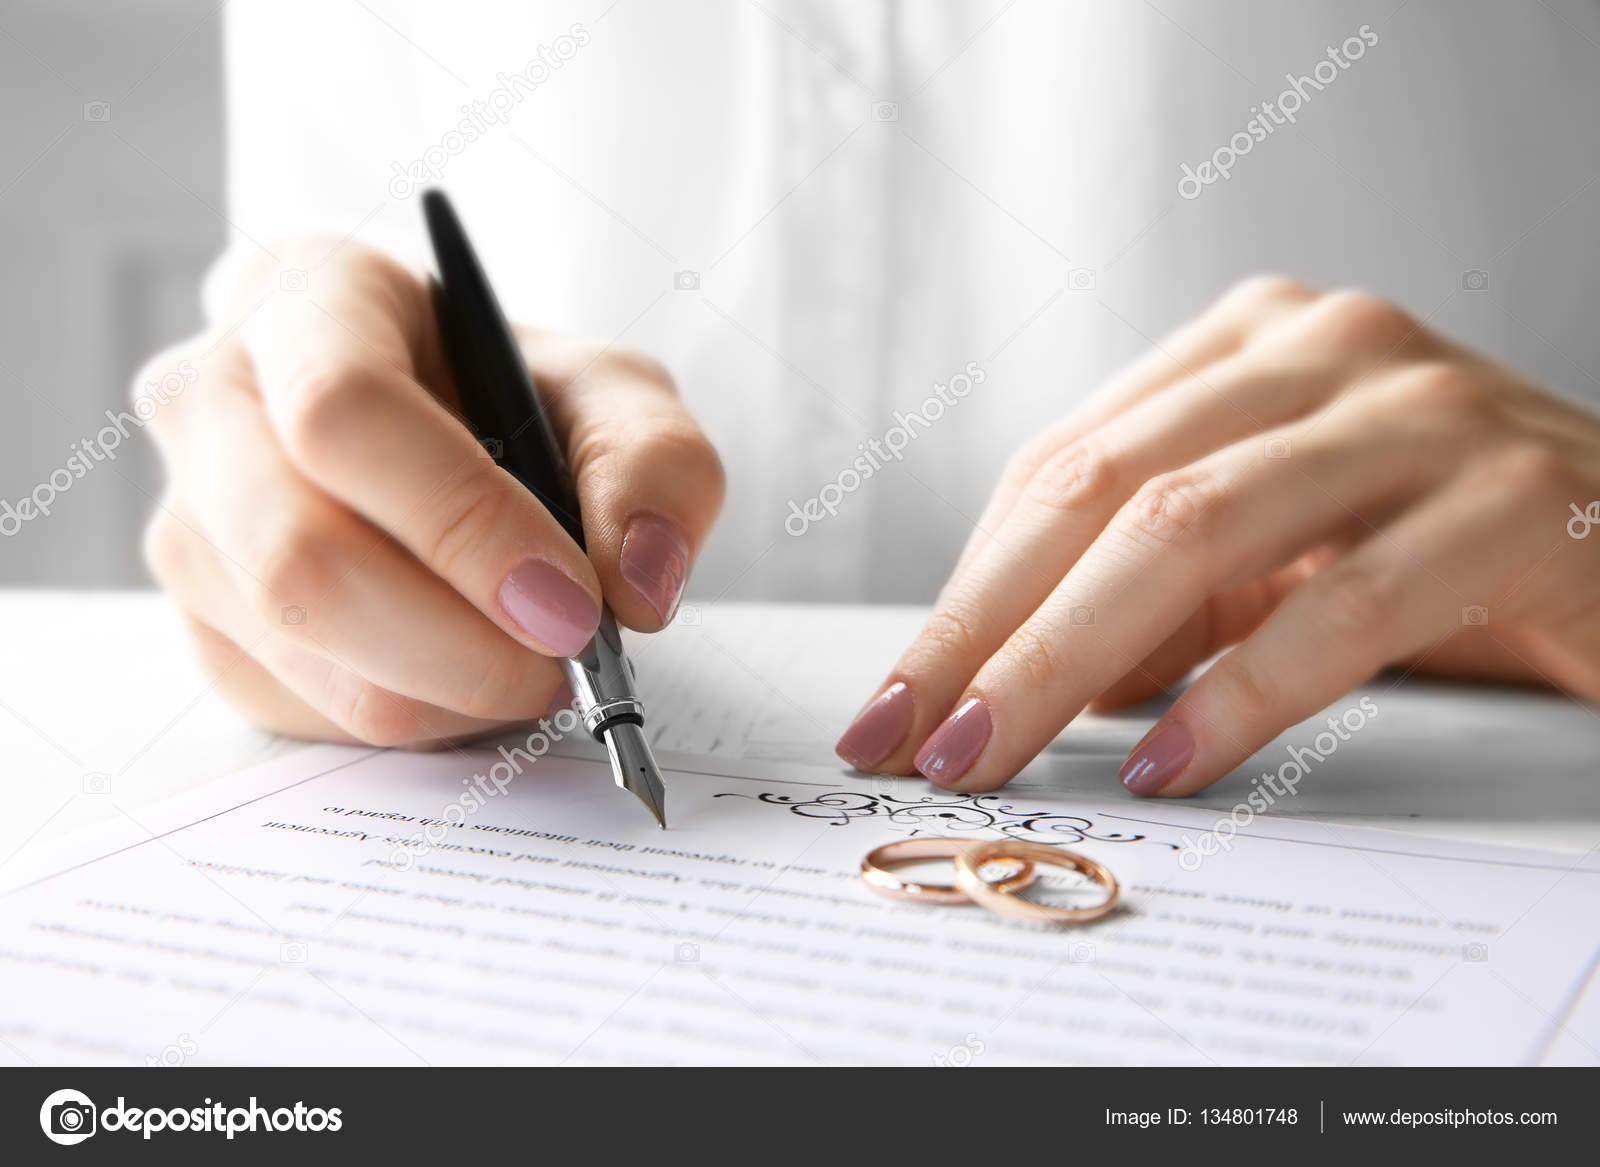 Signing marriage contract stock photo belchonock 134801748 signing marriage contract stock photo altavistaventures Choice Image